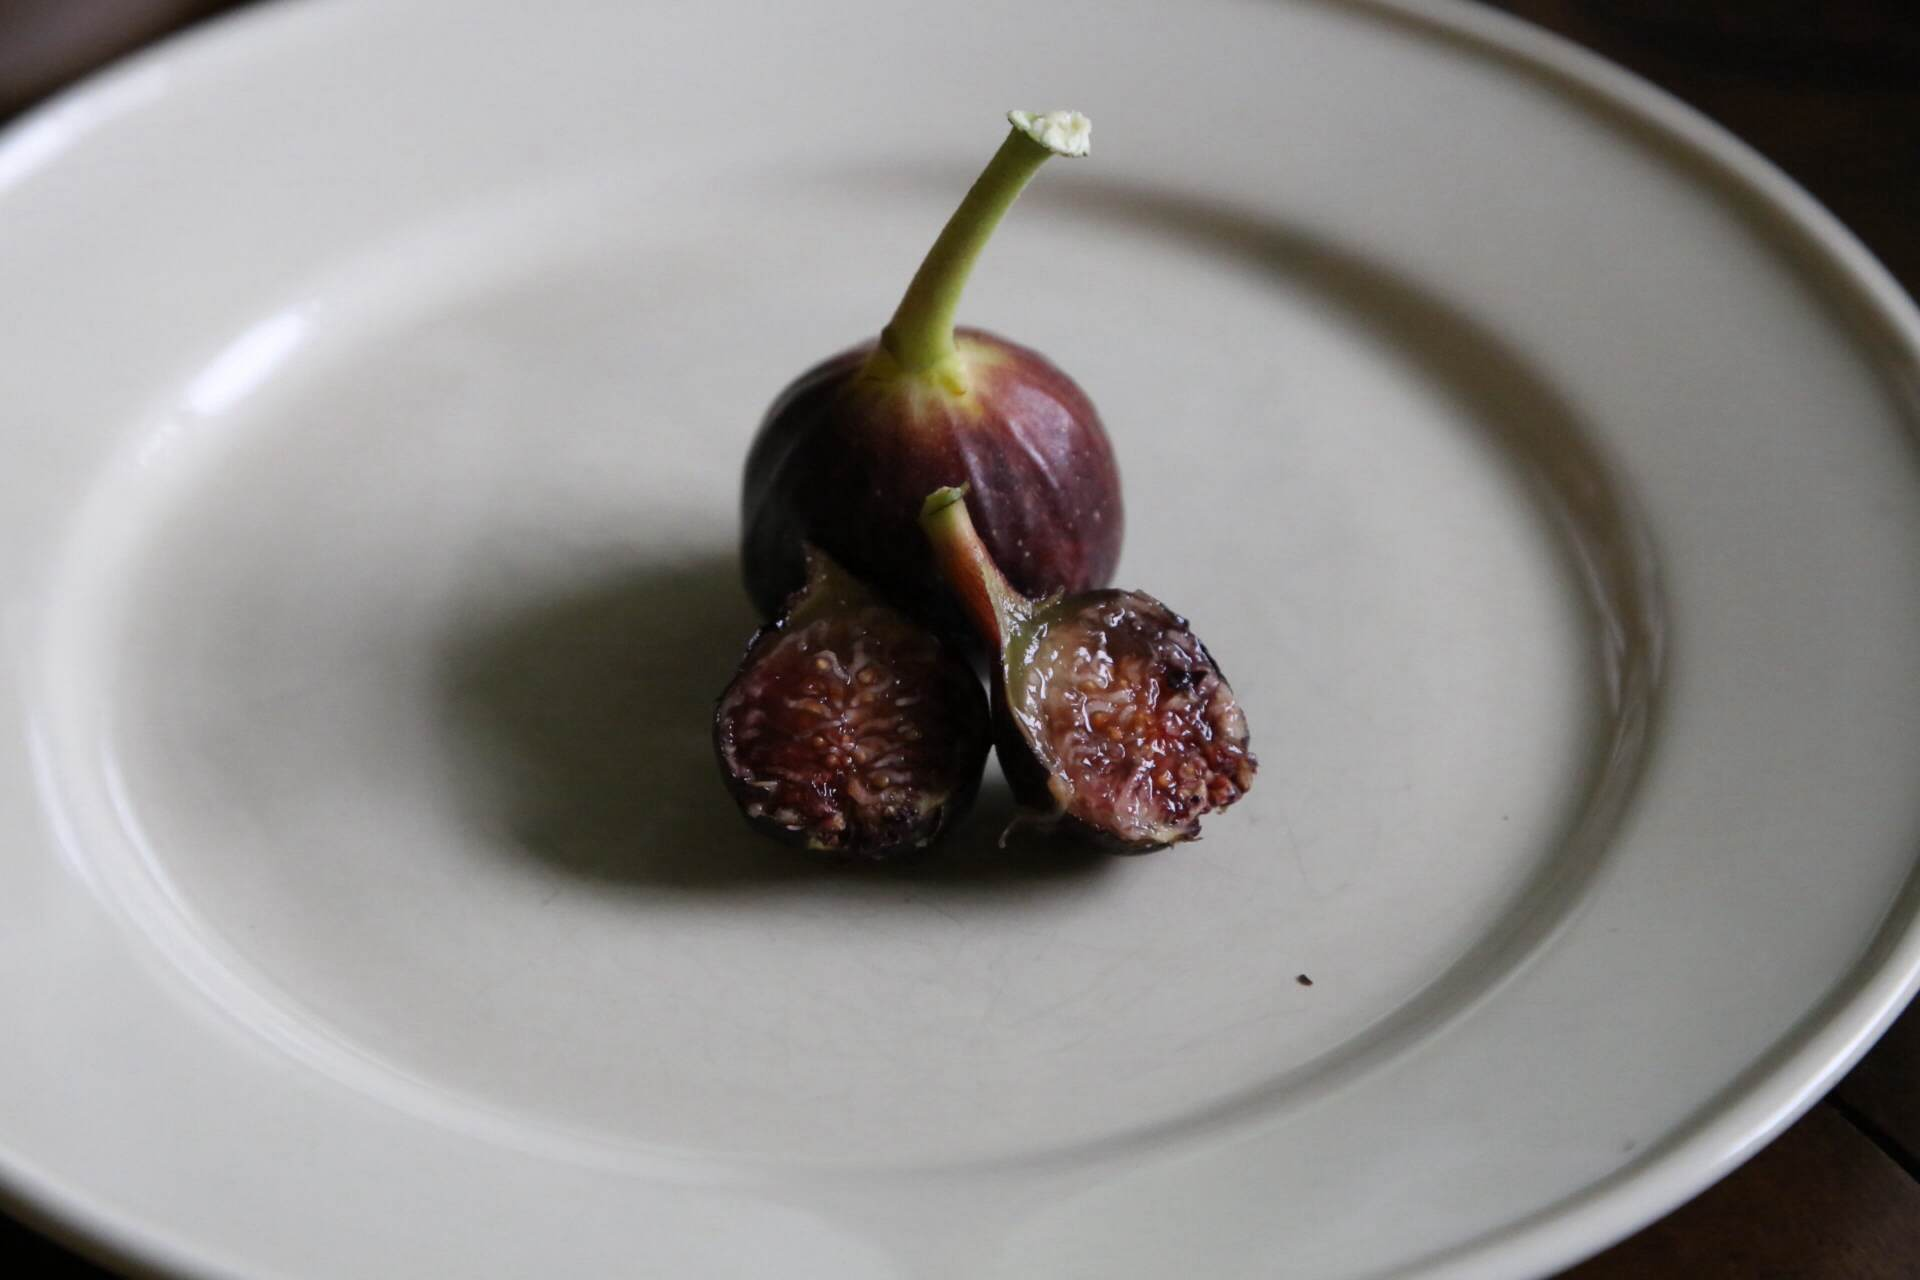 A ripe pair of Ronde de Bordeaux figs on a plate.